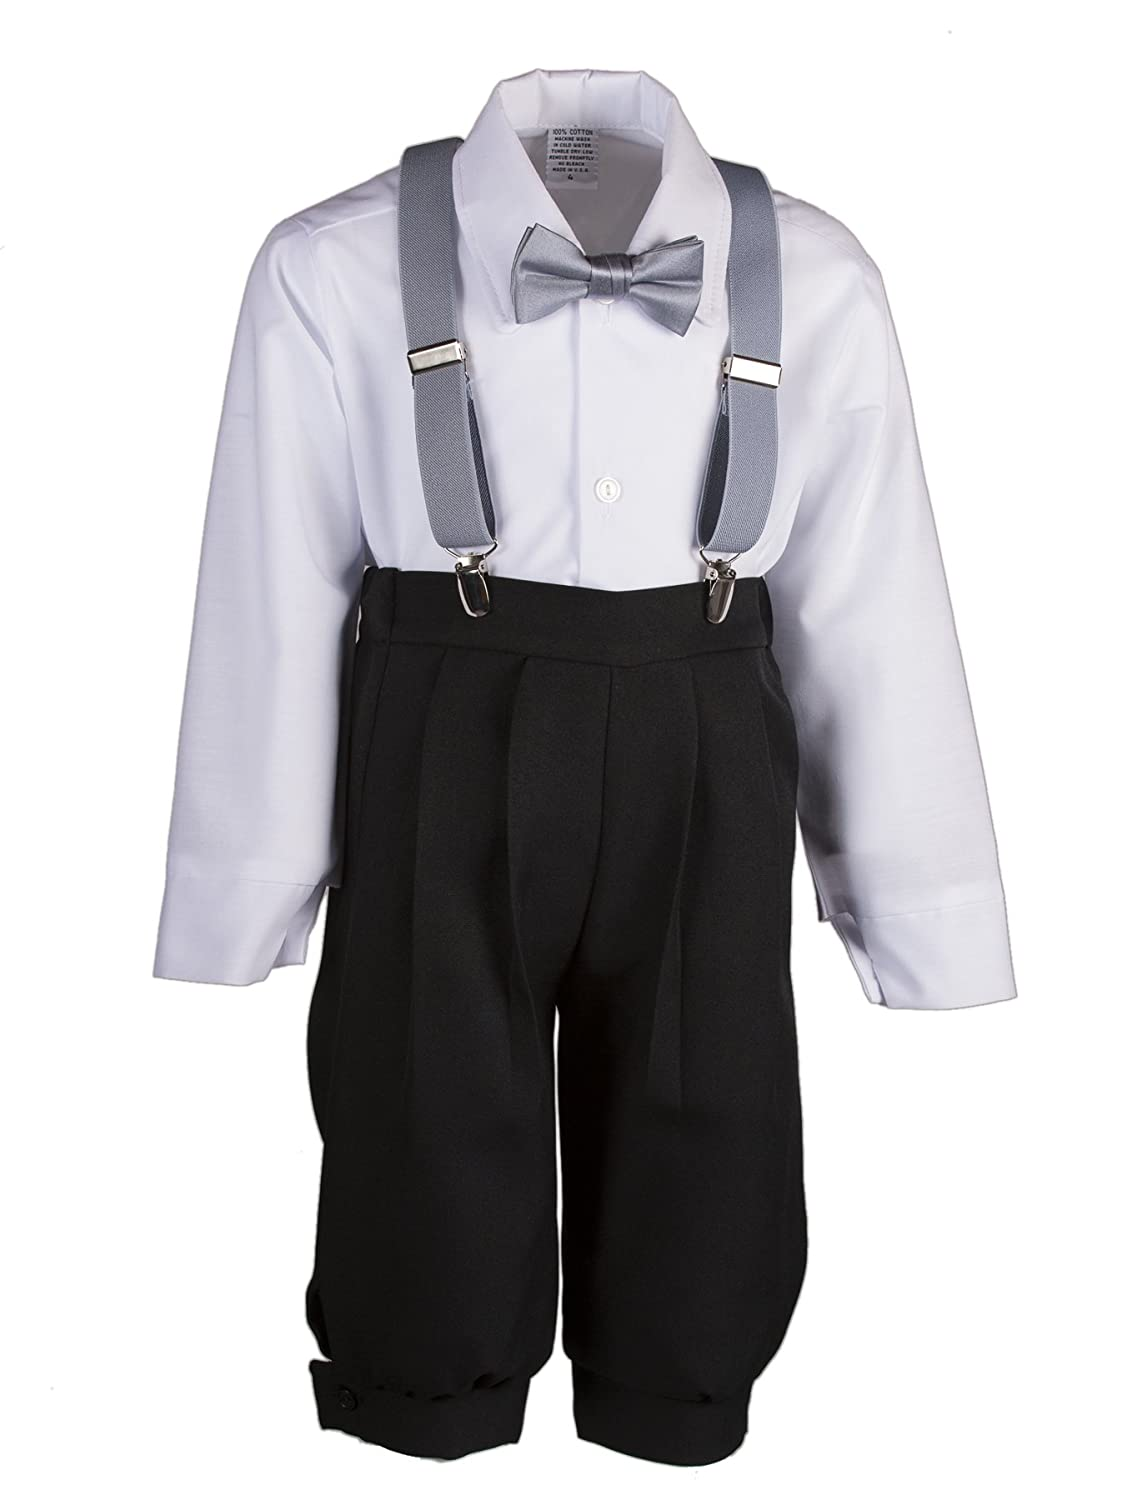 Tuxgear Boys Black Knickers Outfit Pageboy Cap with Suspenders /& Bow Tie